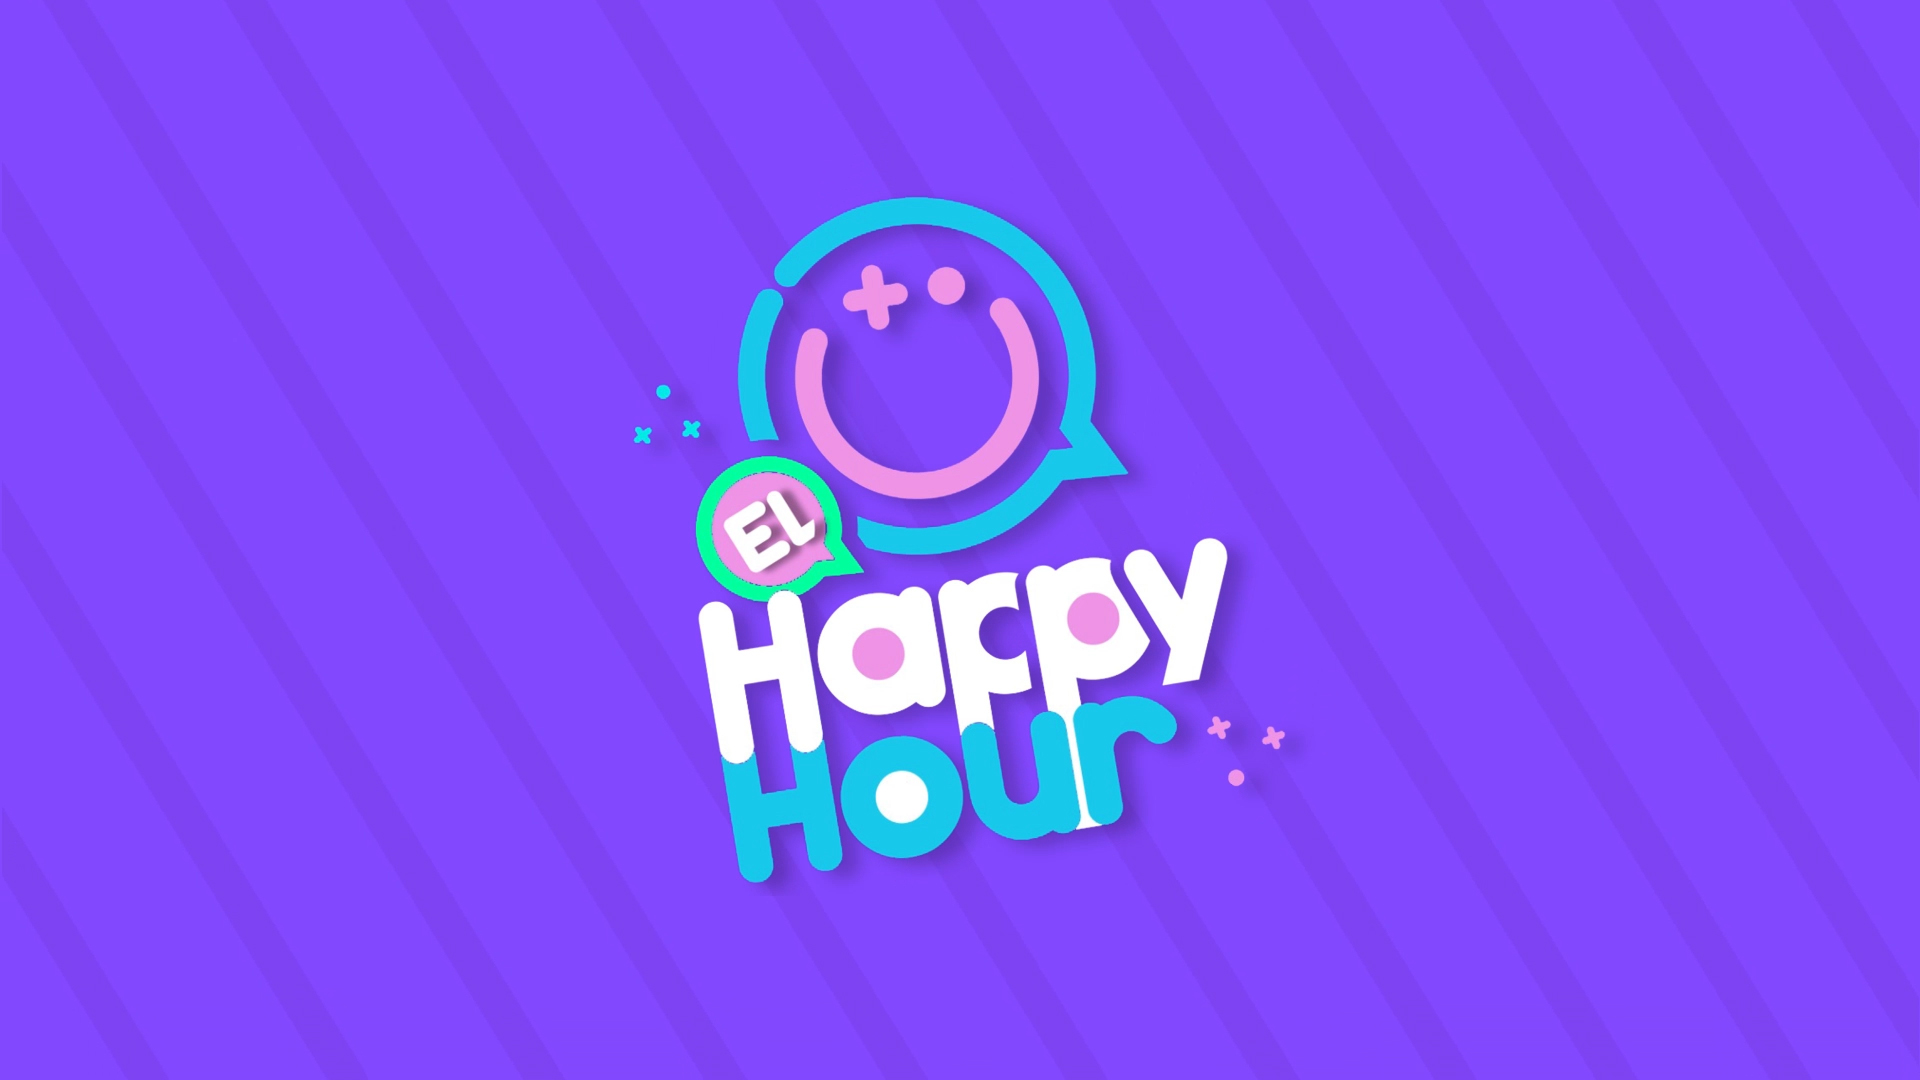 El Happy Hour